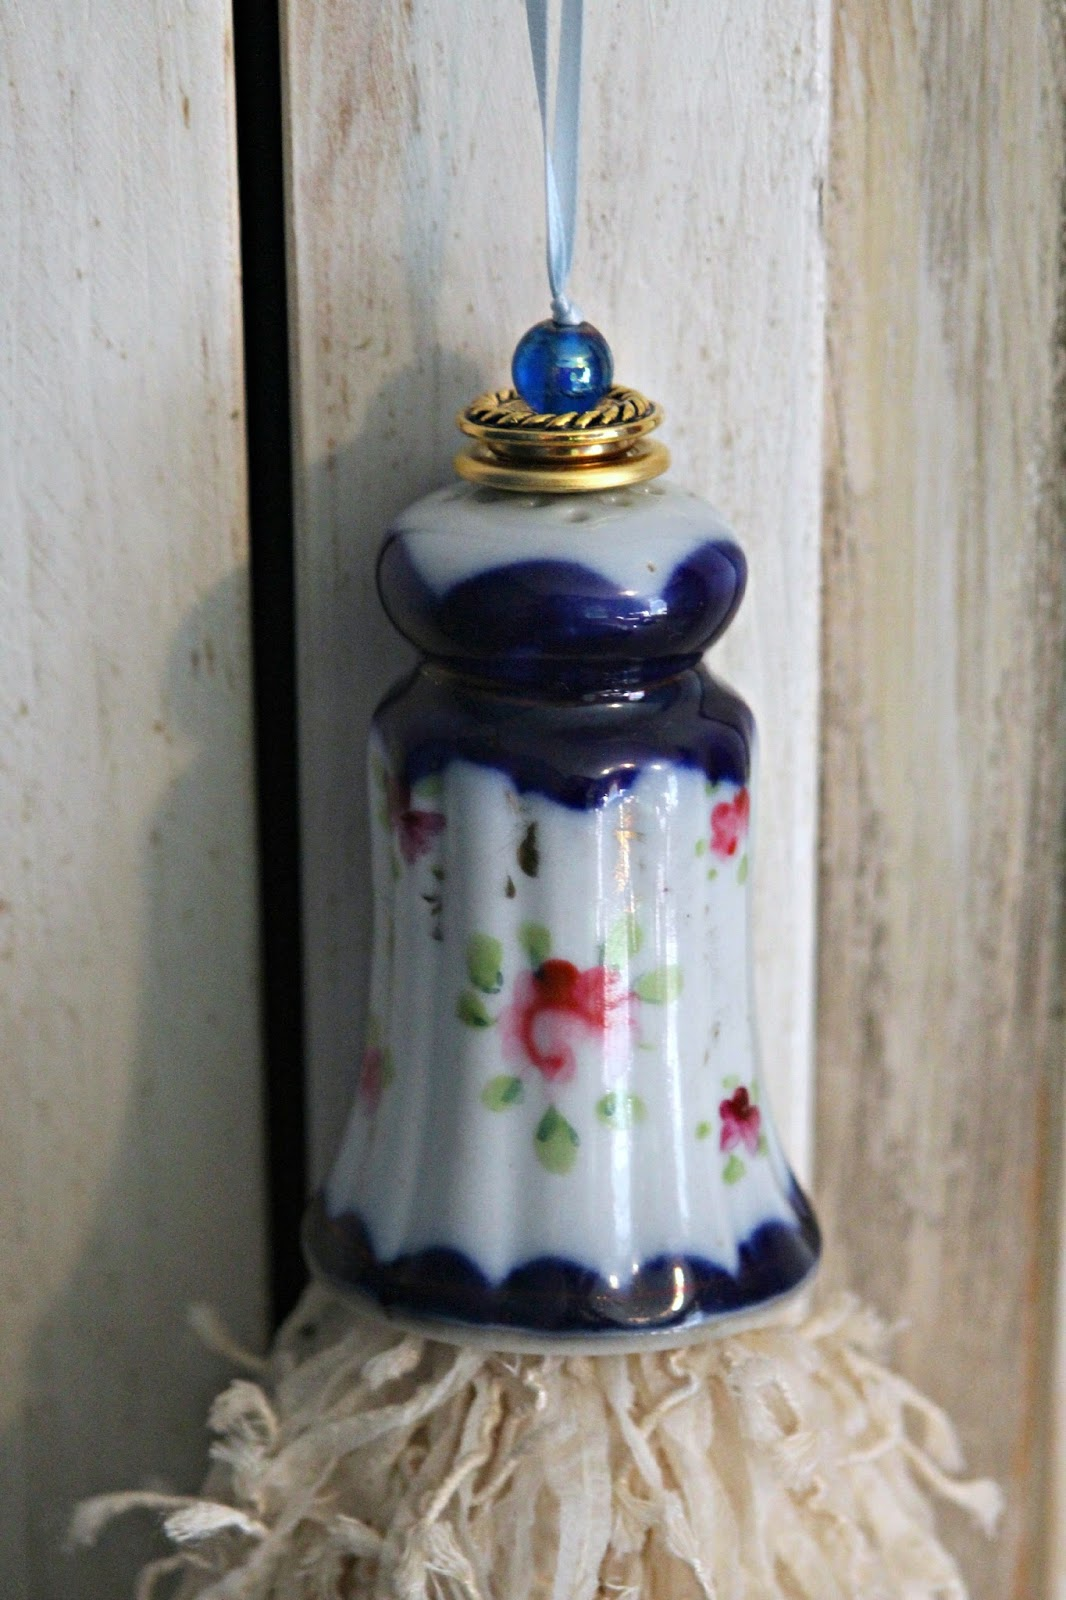 Moonbeams Amp Fireflies Orphaned Salt Shaker Has New Life